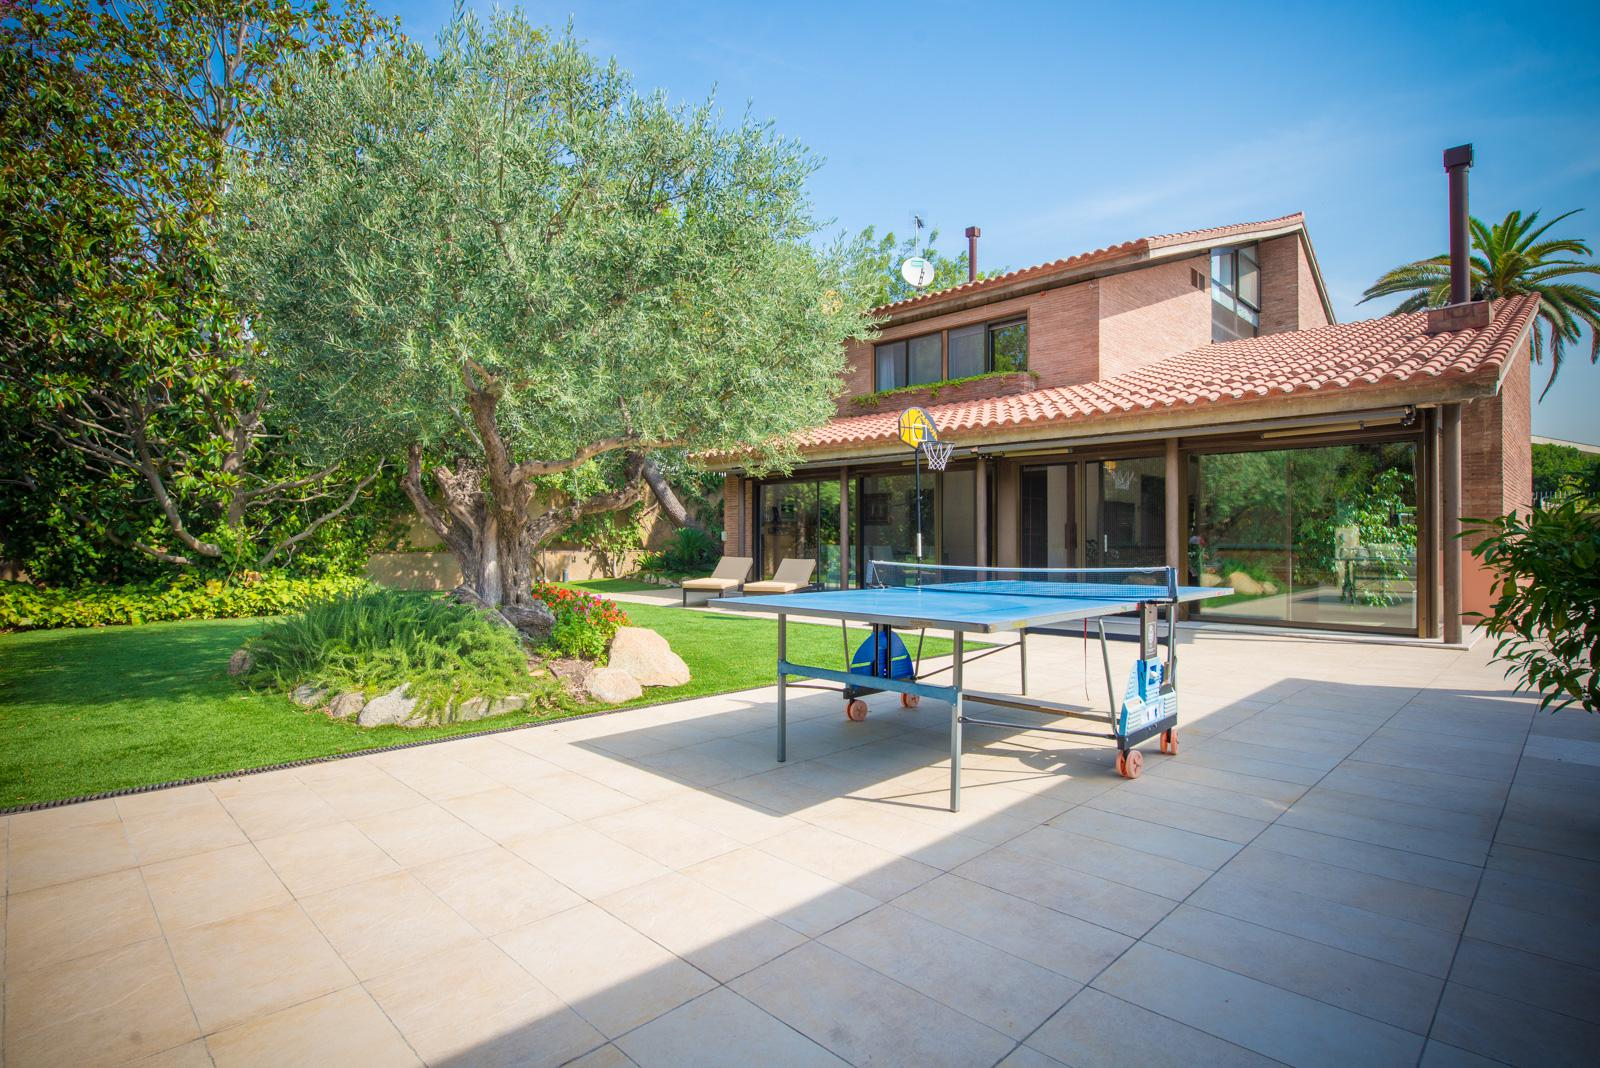 121070 House Isolated for sale in Les Corts, Pedralbes 10